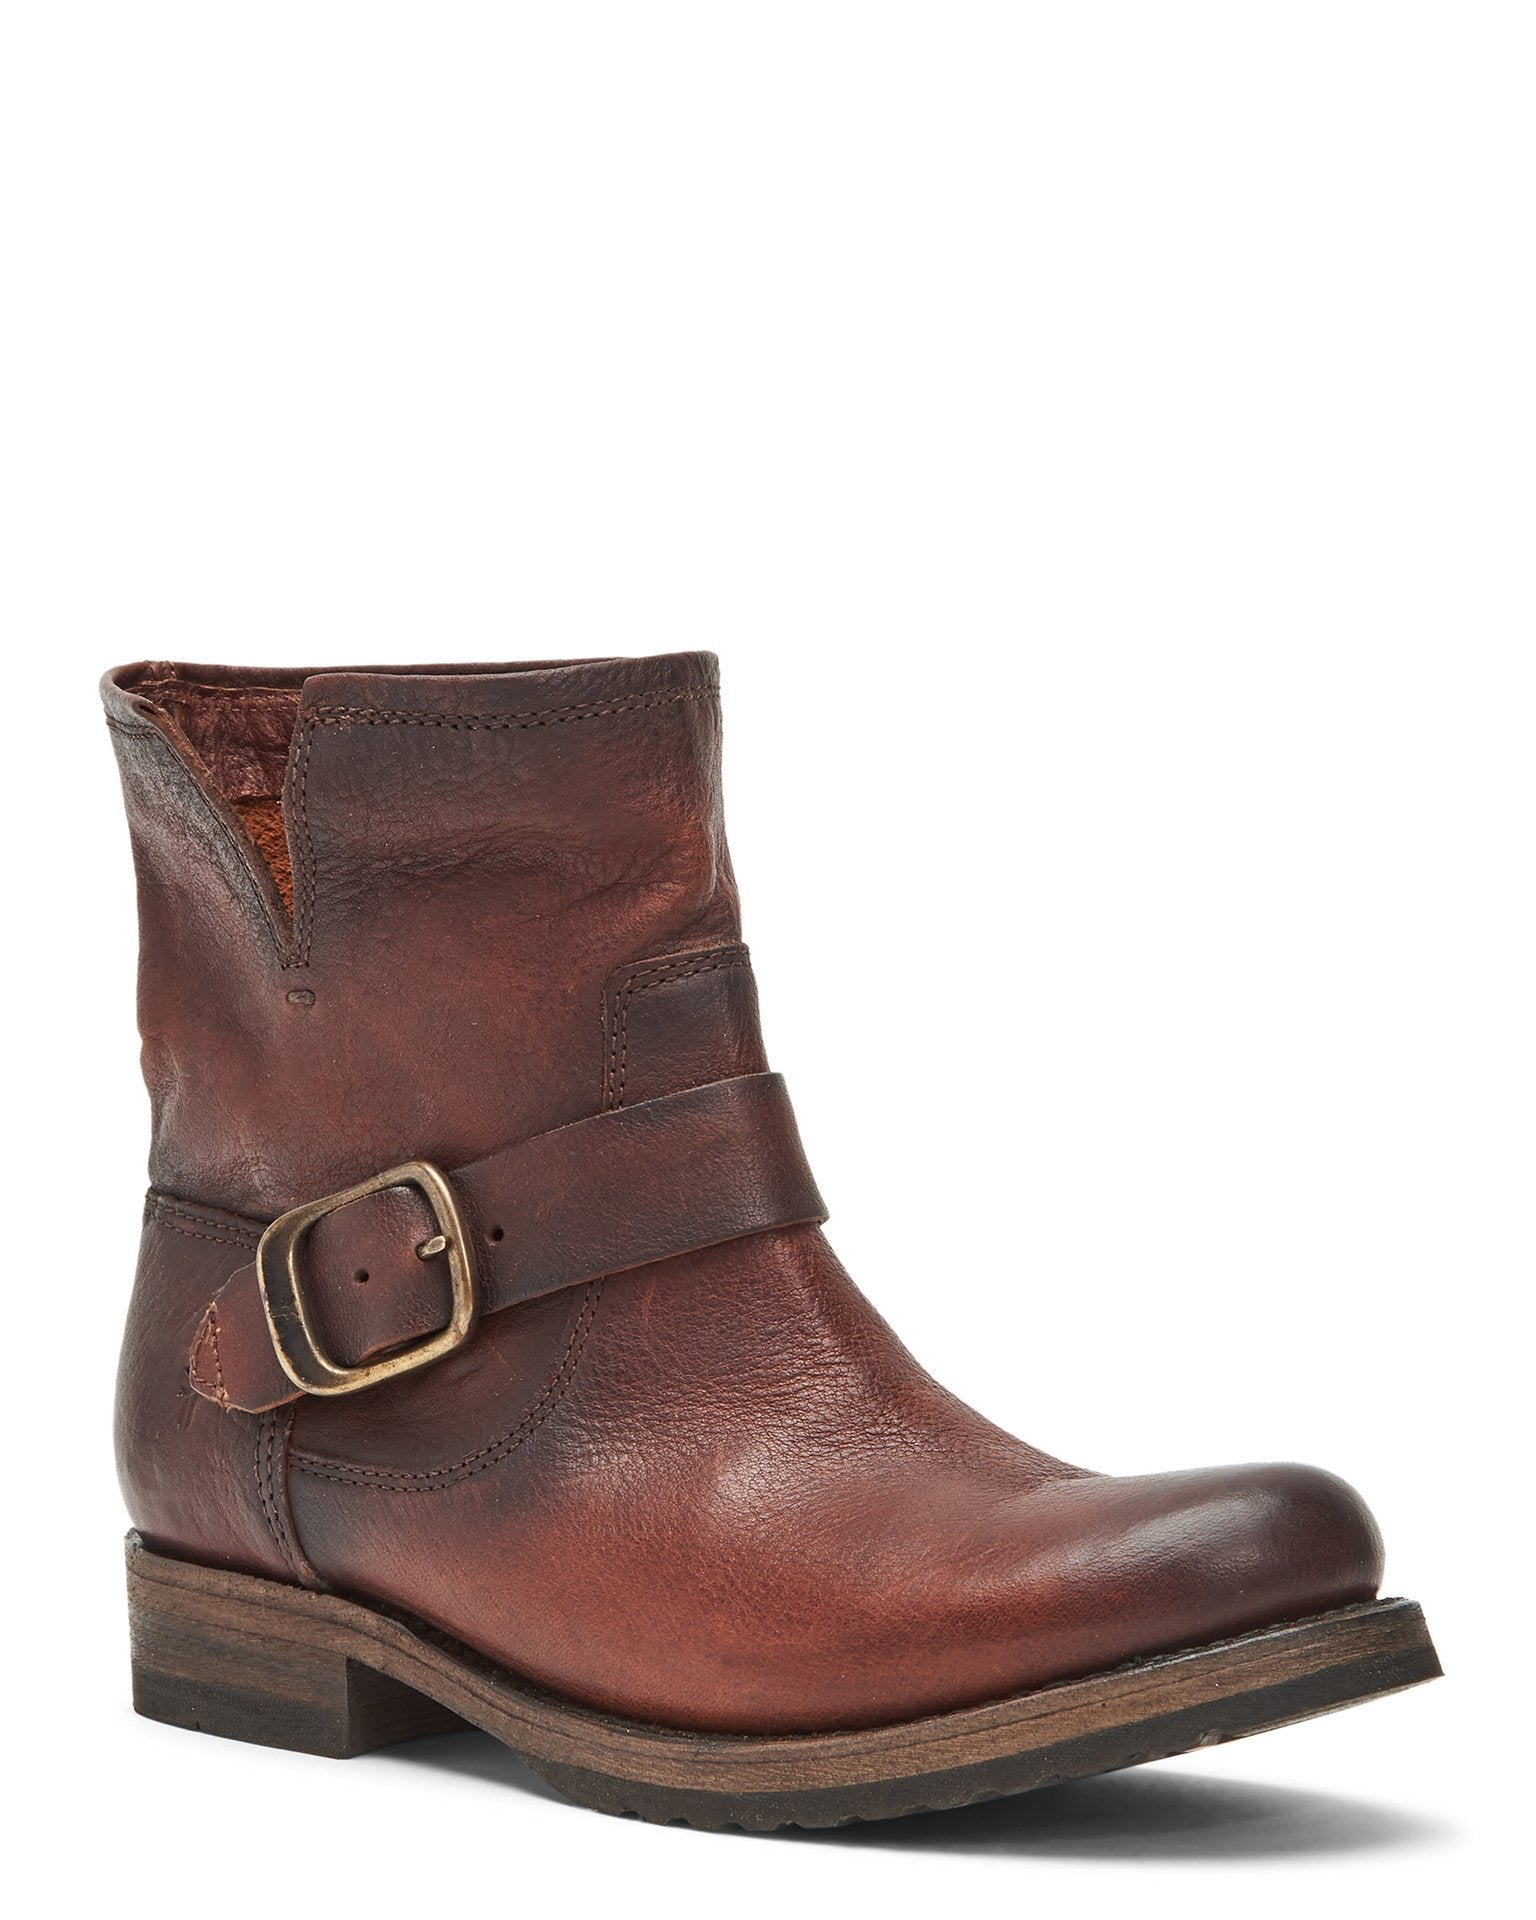 The Frye Company Shoes Redwood / 6 Veronica Bootie in Redwood